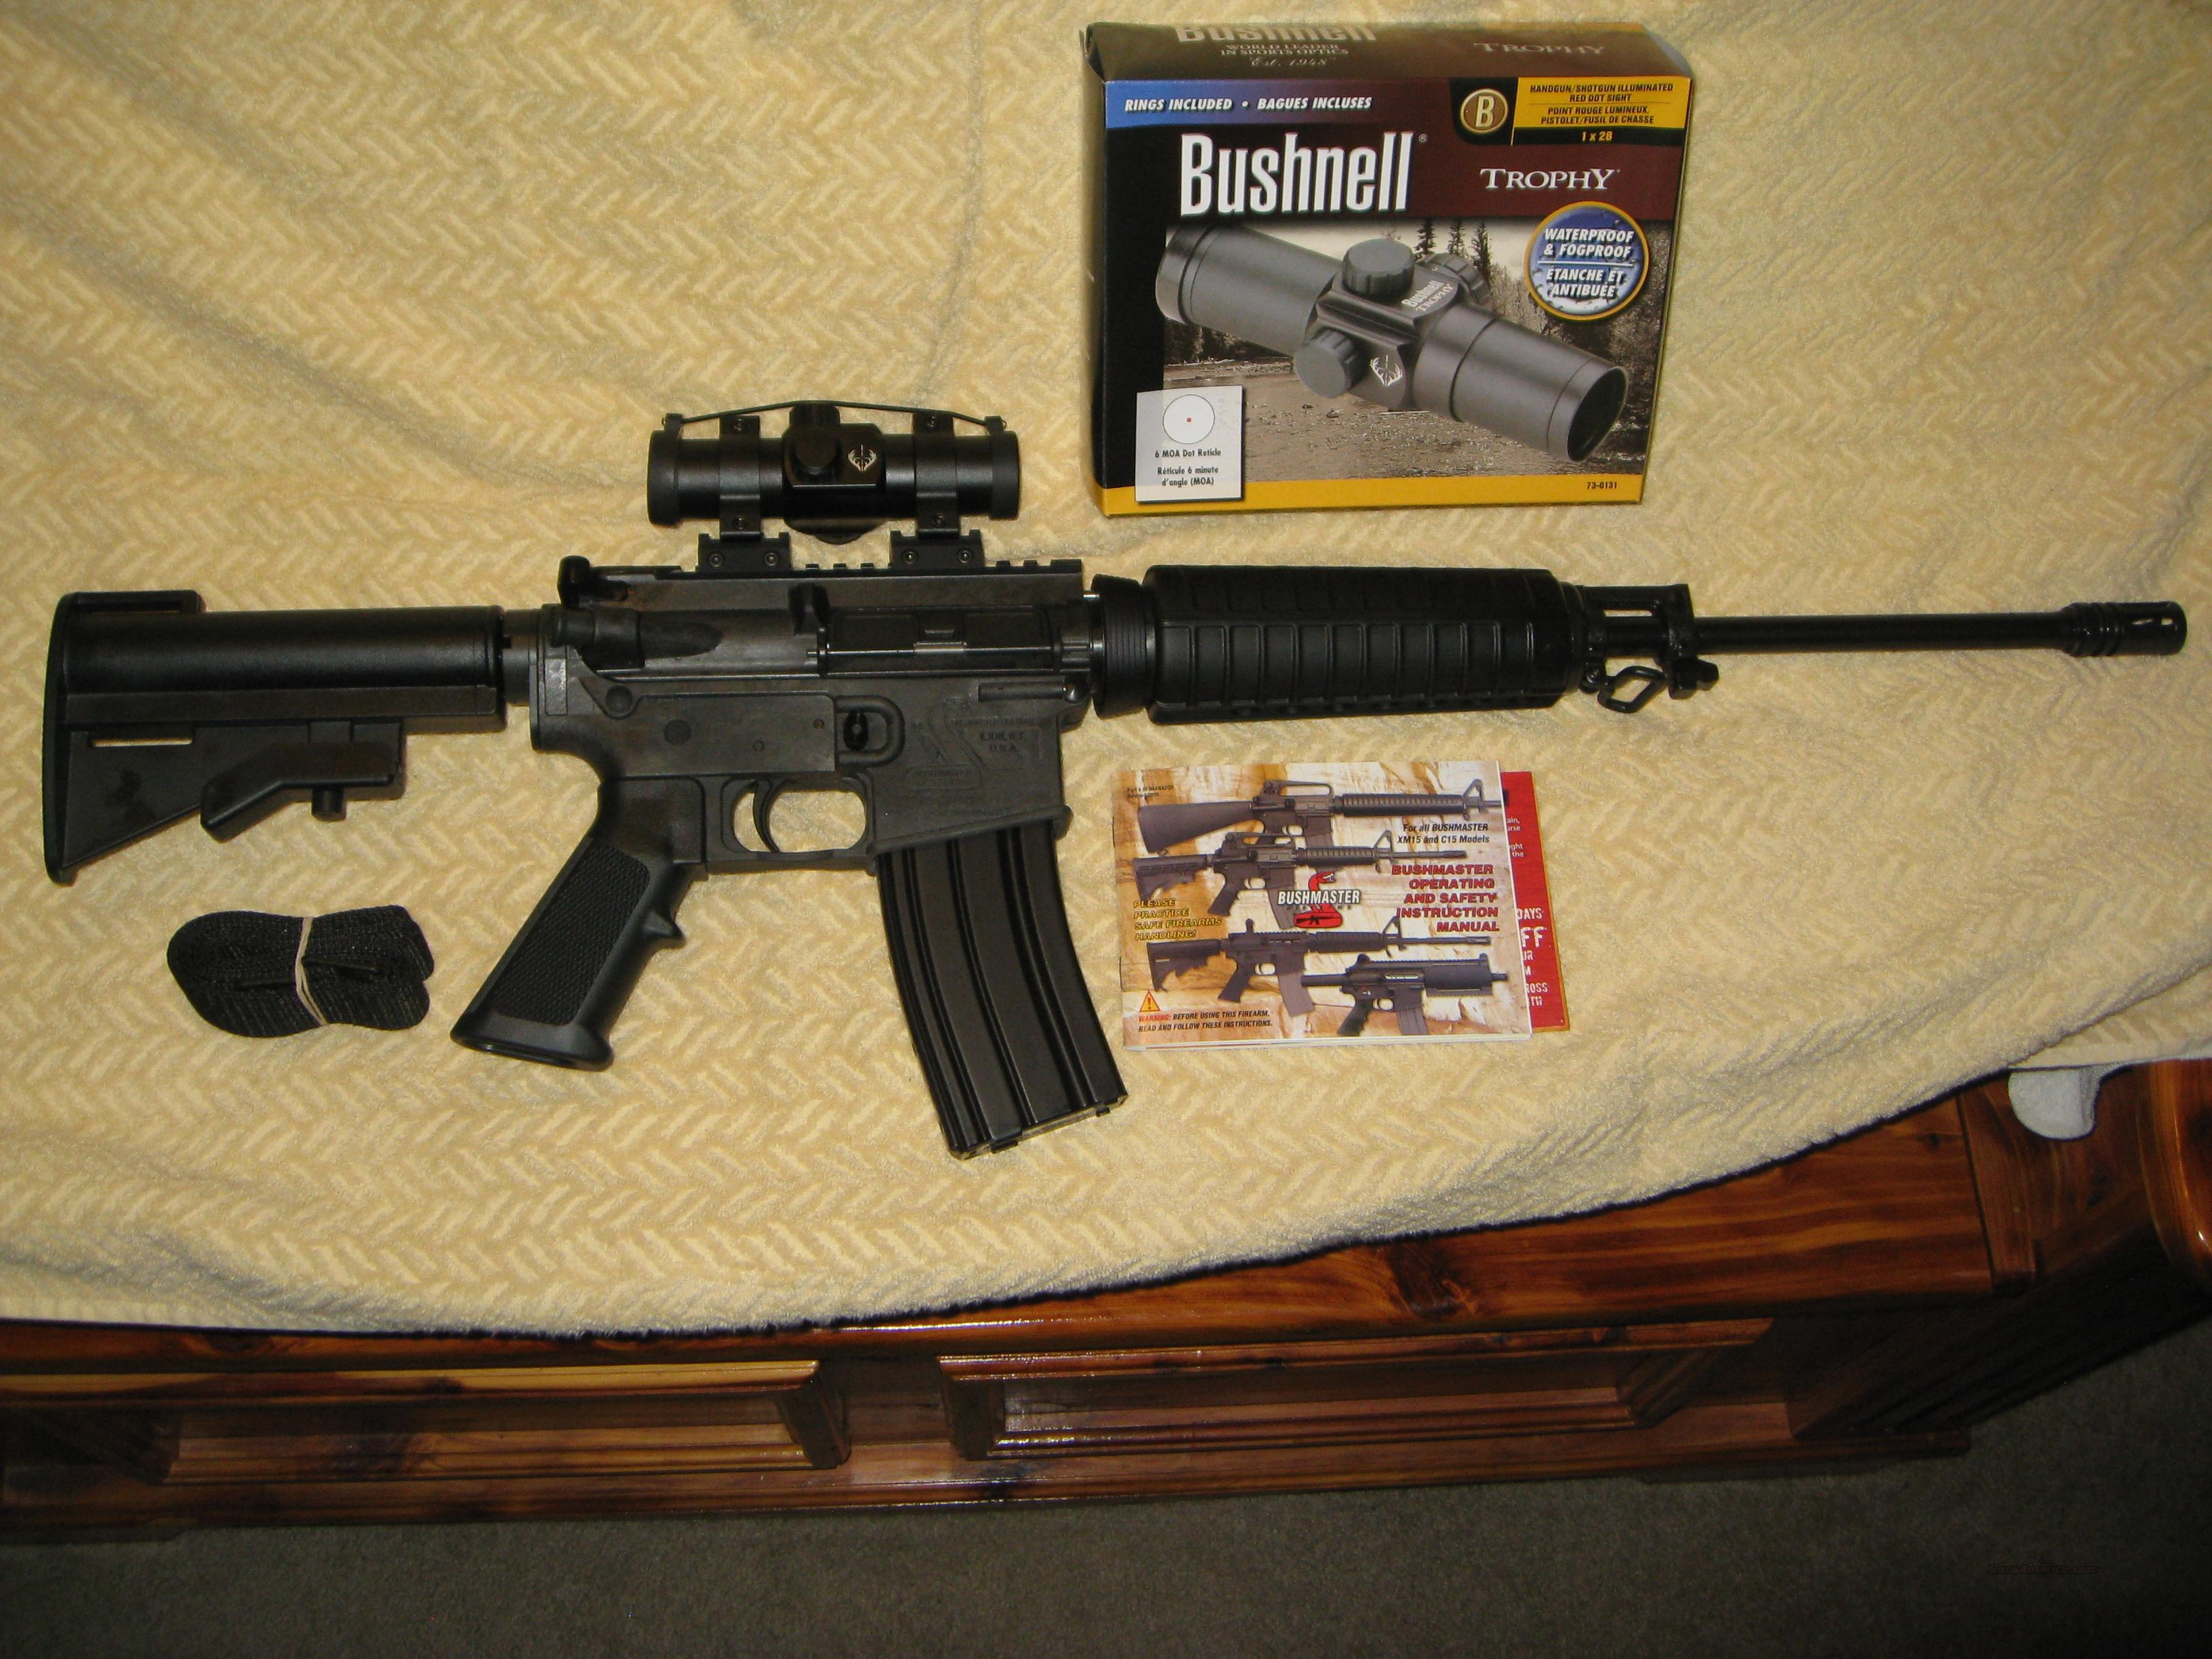 Bushmaster Superlight Carbon-AR15 .223/5.56  Guns > Rifles > AR-15 Rifles - Small Manufacturers > Complete Rifle